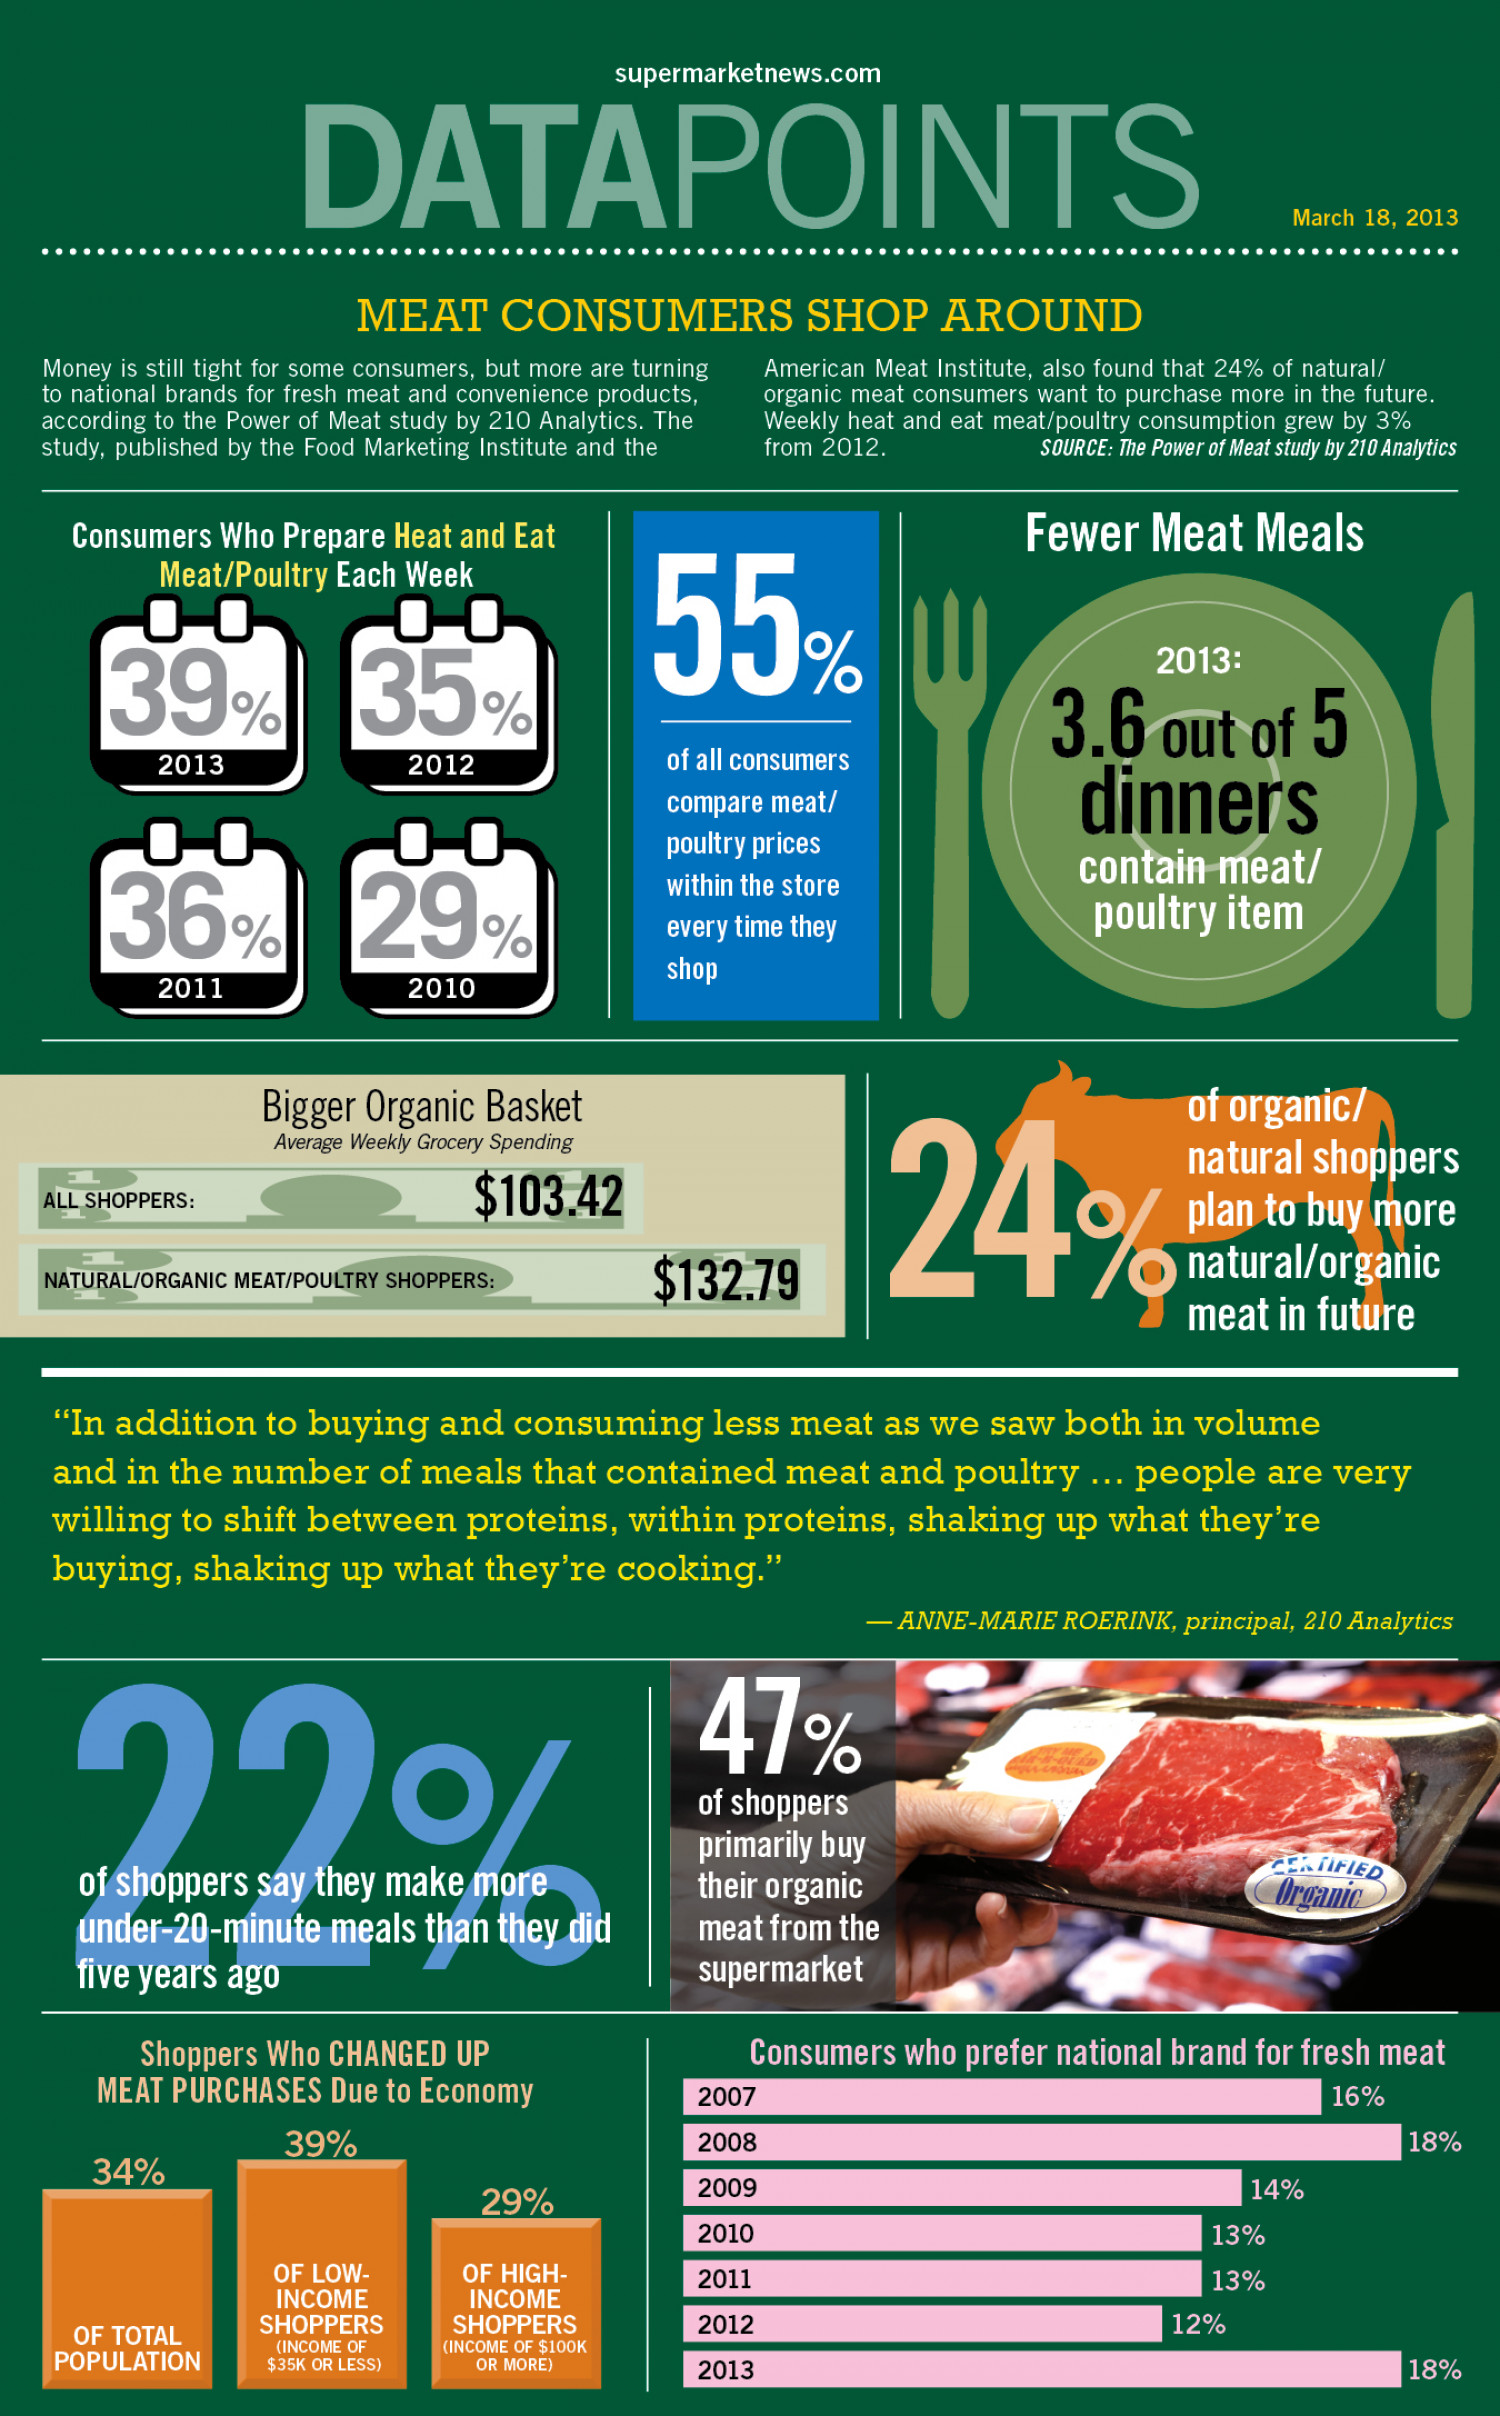 Meat Consumers Shop Around Infographic